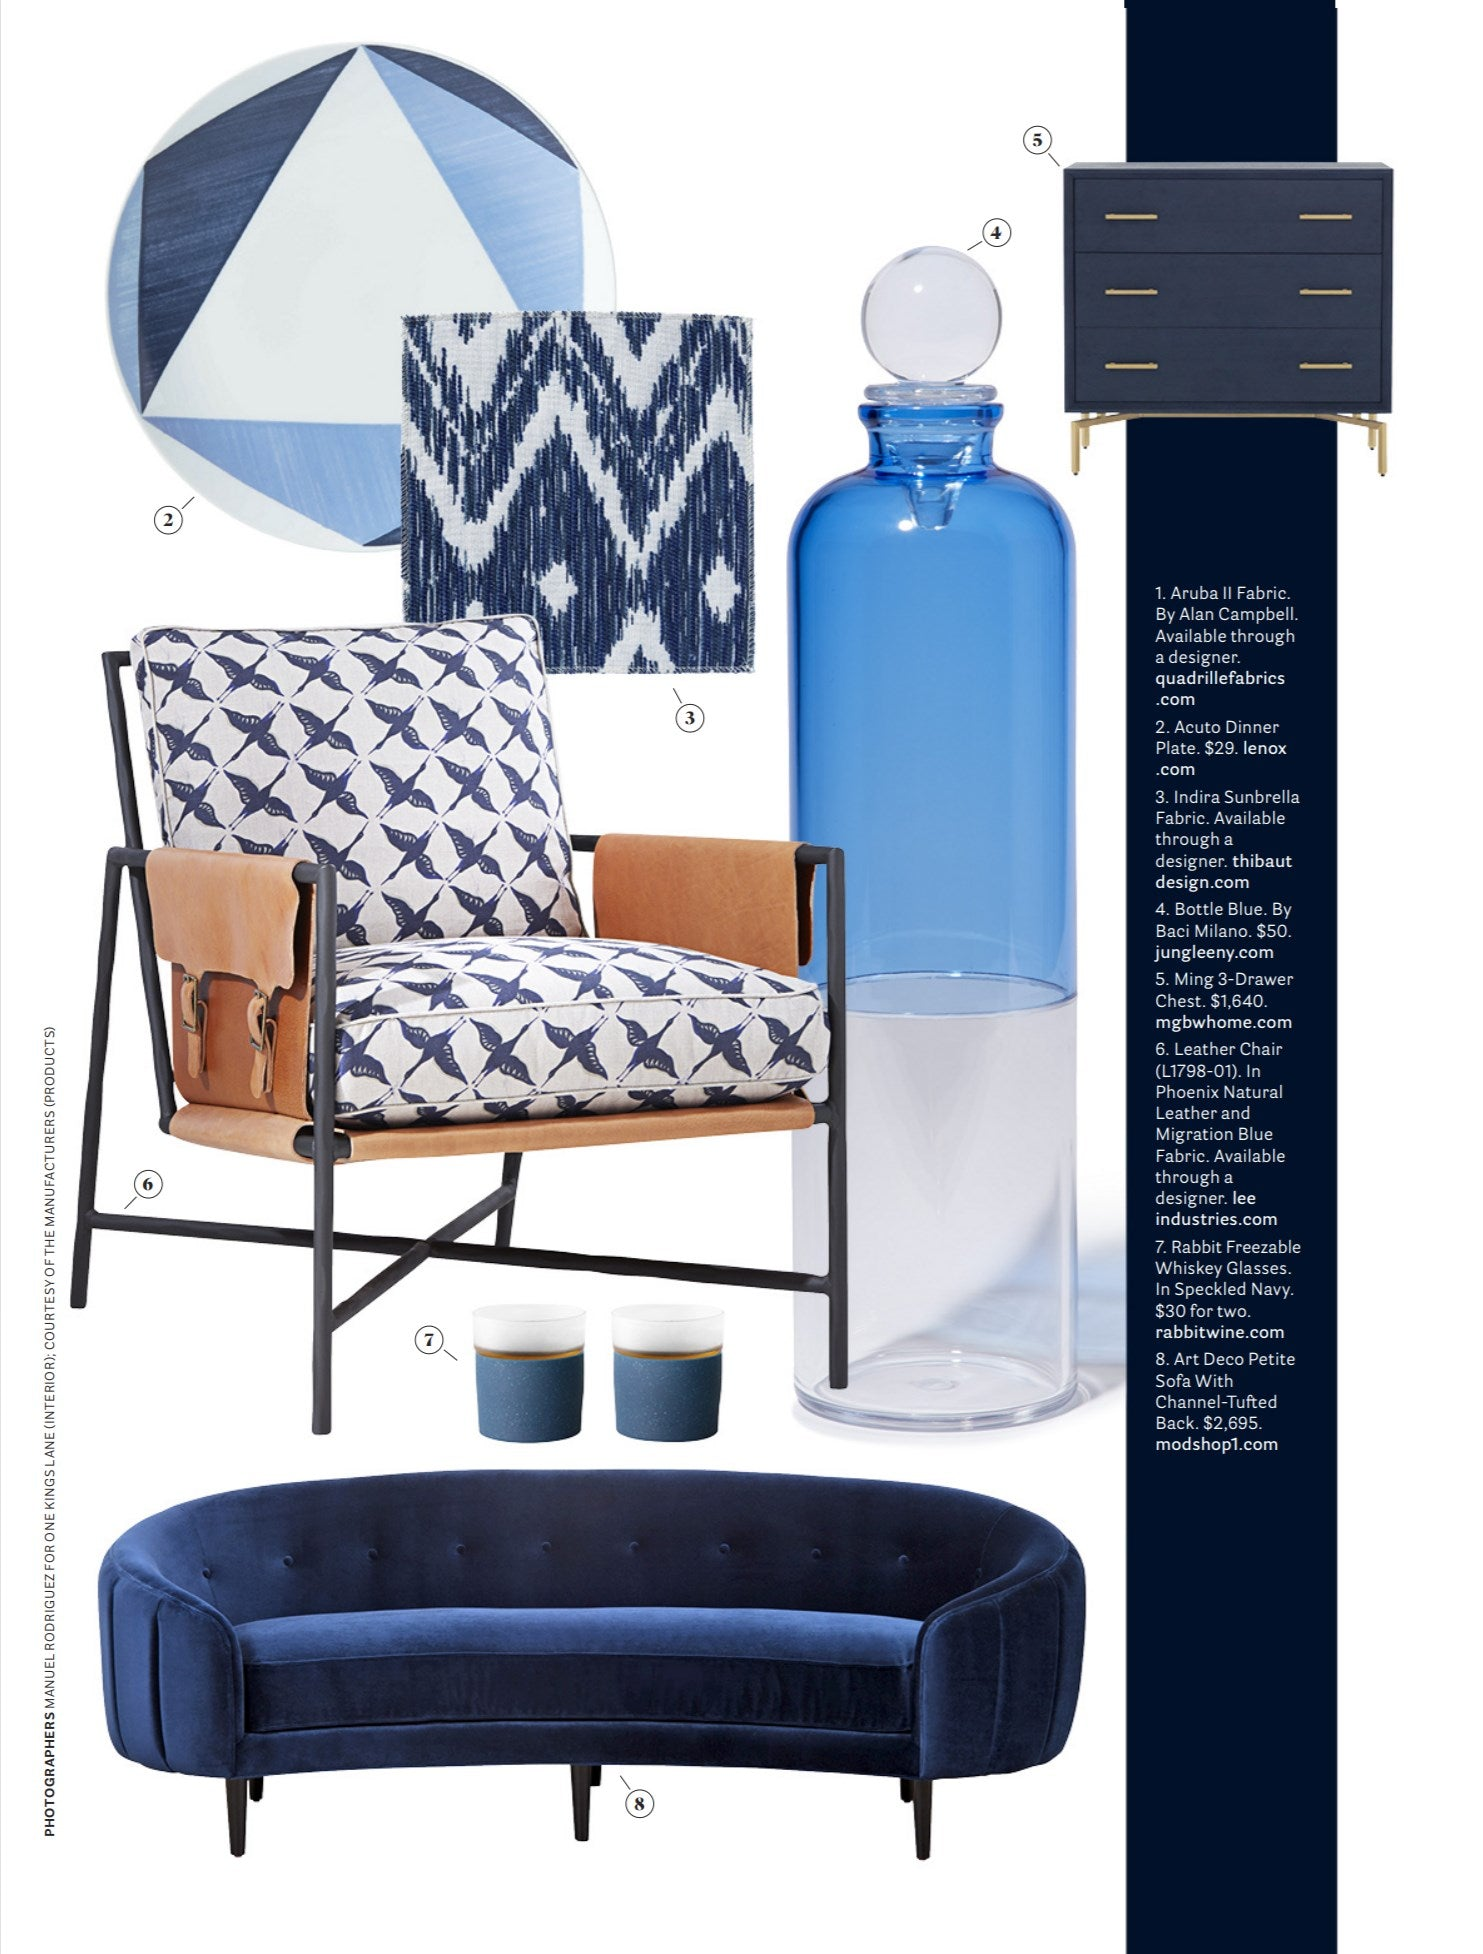 house beautiful january 2019 featuring modshop's navy velvet art deco petite sofa with channel tufting